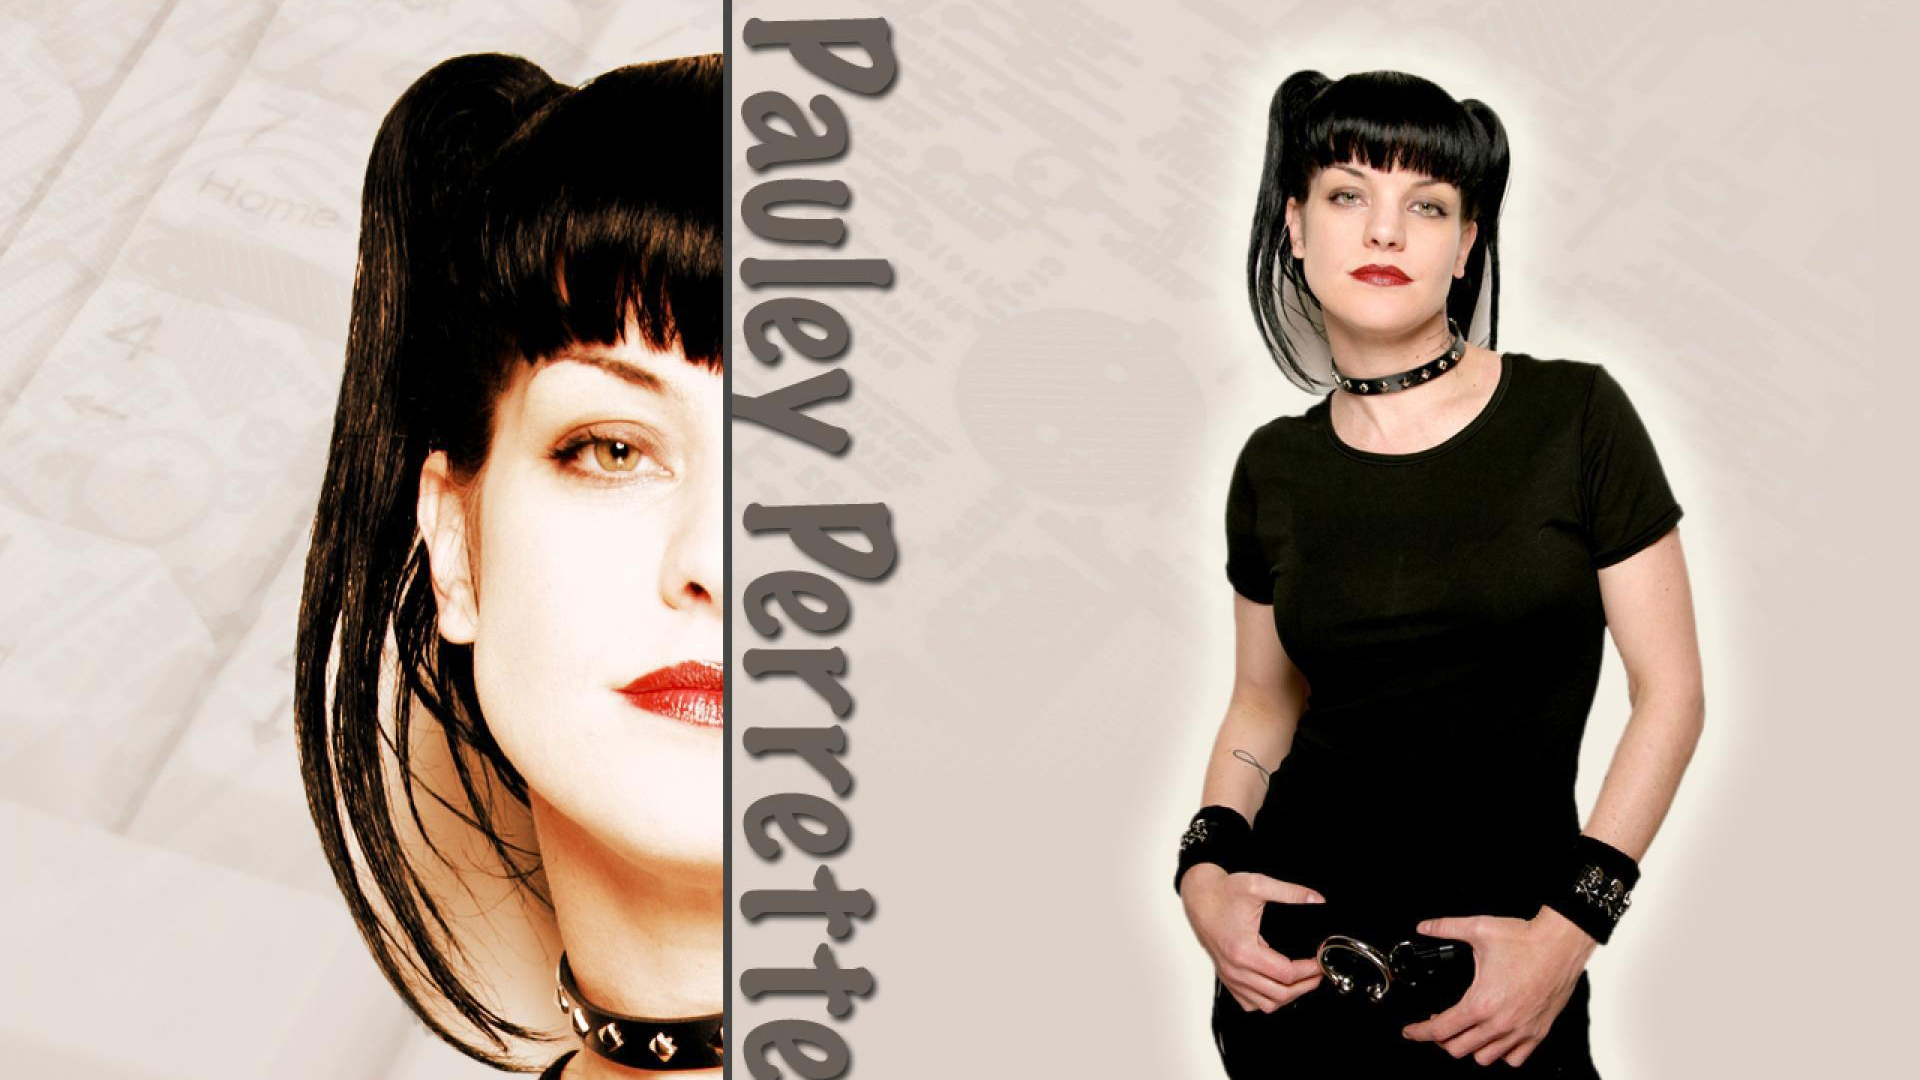 Pauley perrette pin up pictures 11